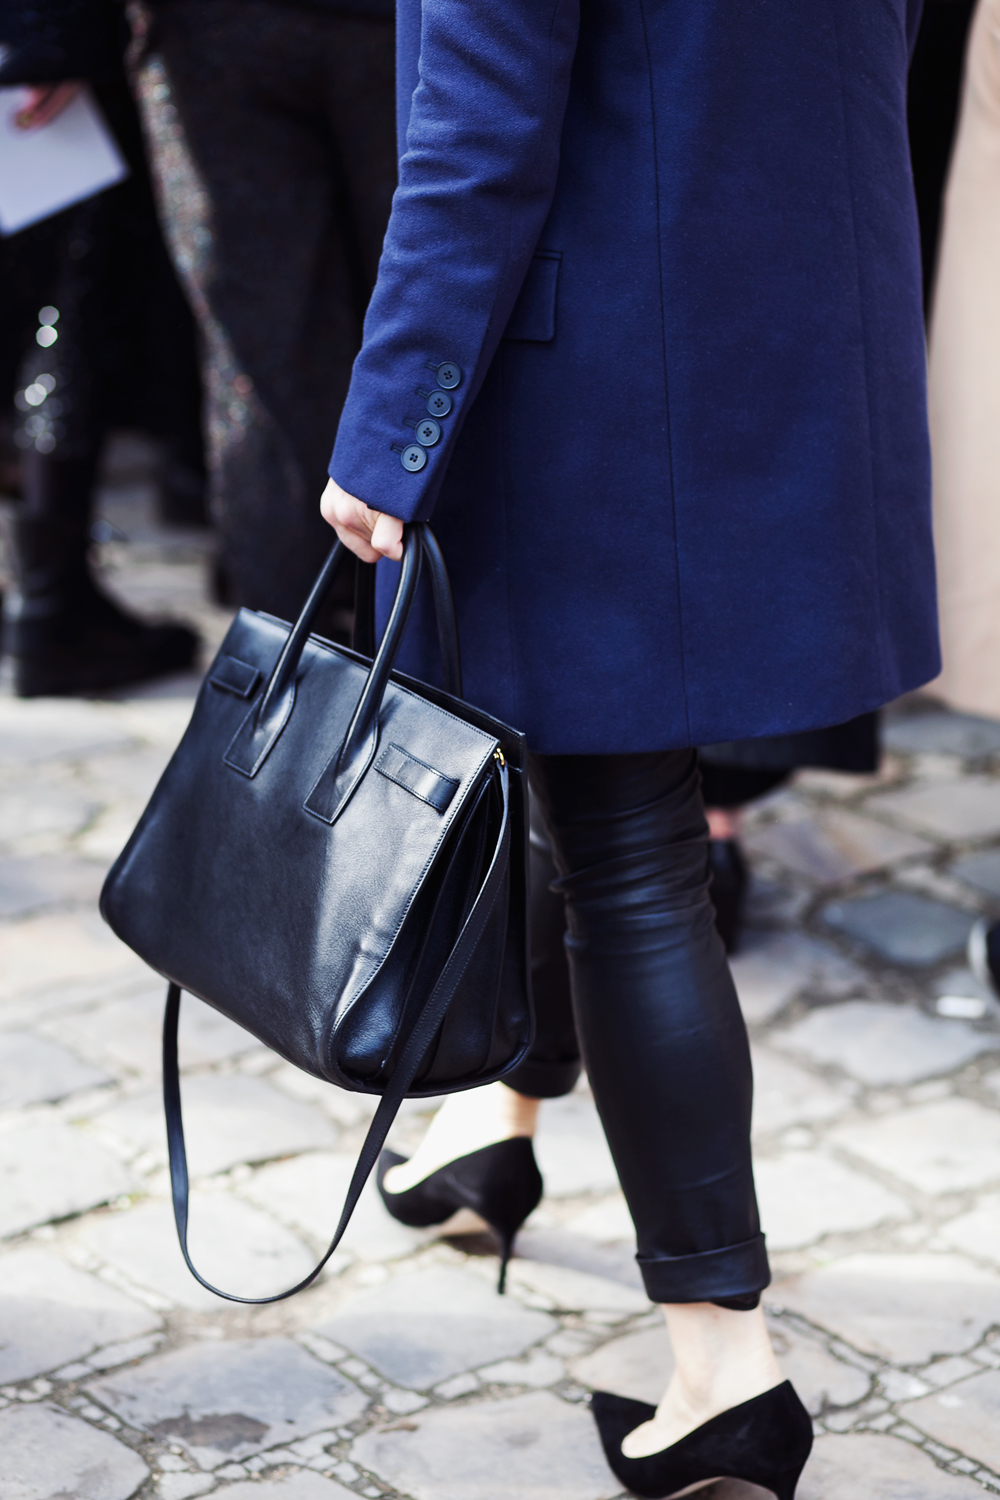 Paris Fashion Week Bags 29